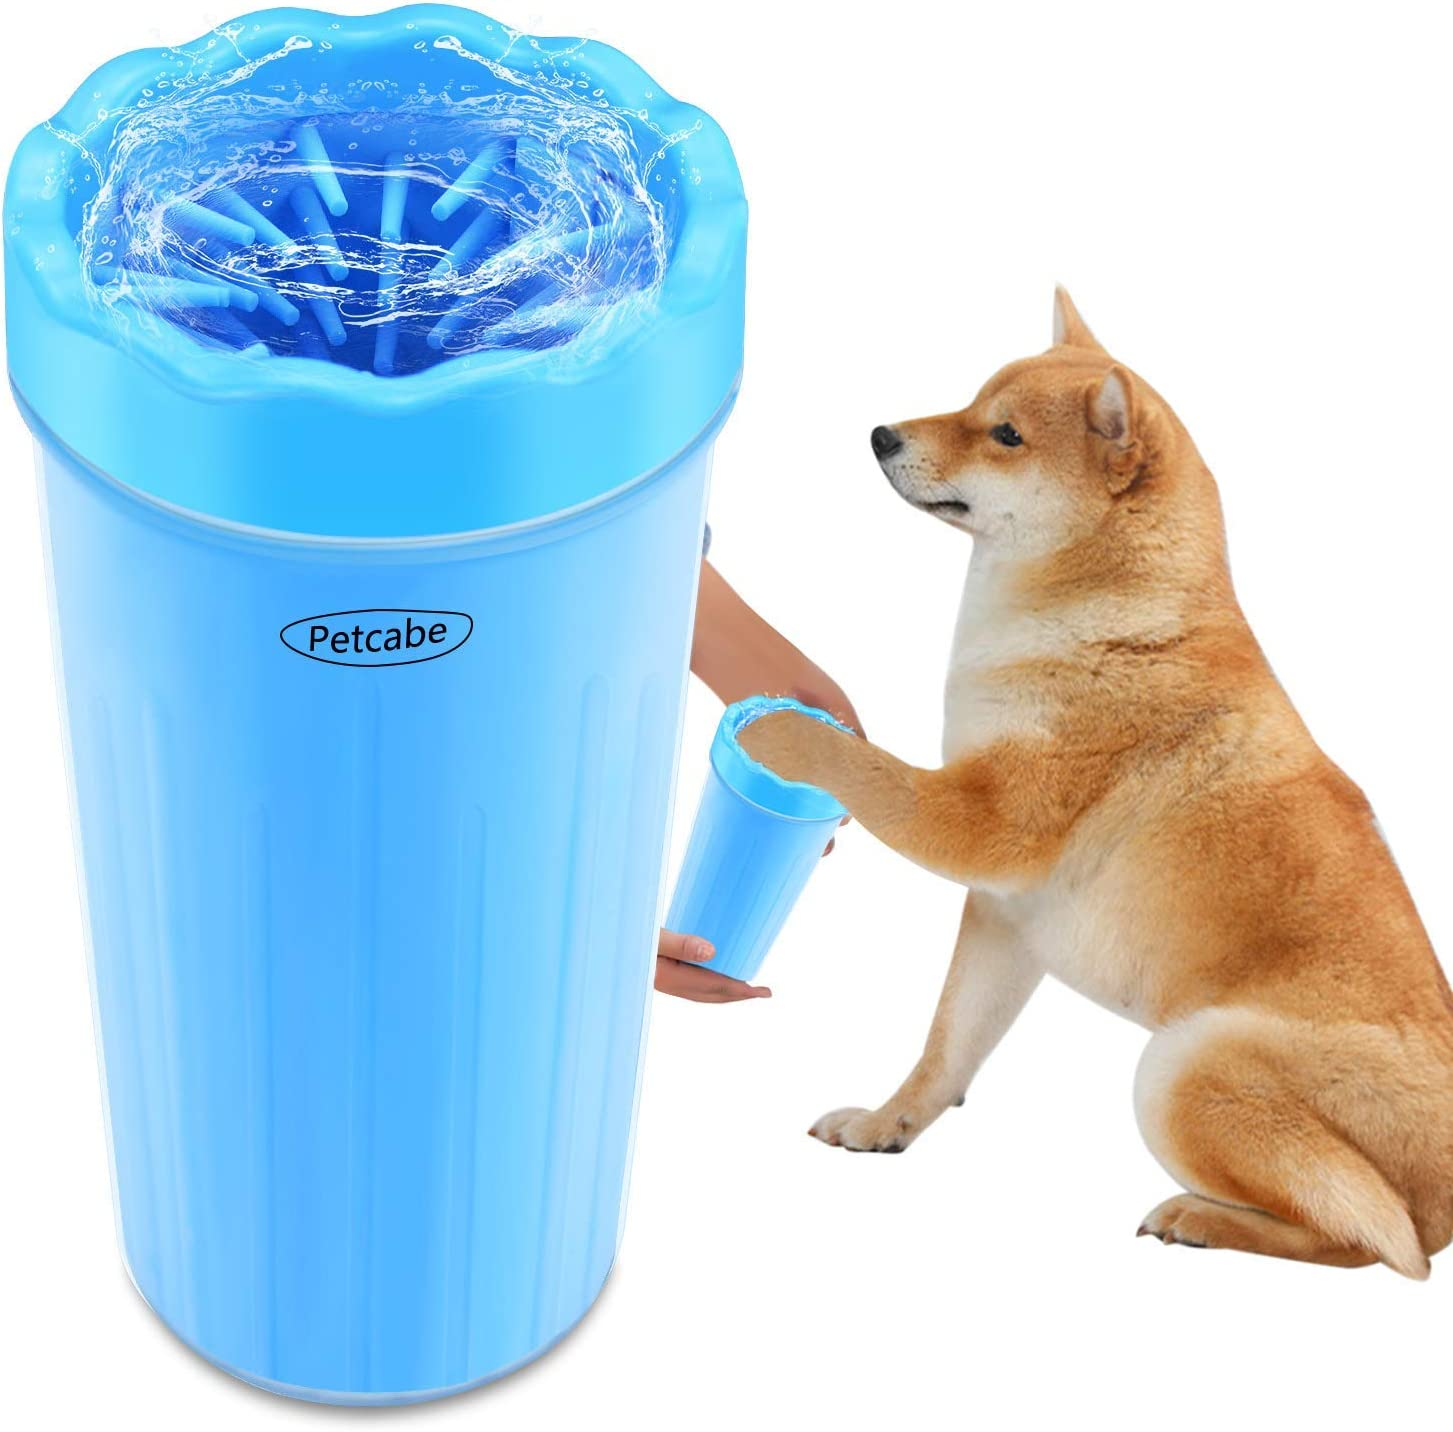 Petcabe Portable Dog Paw Cleaner Pet